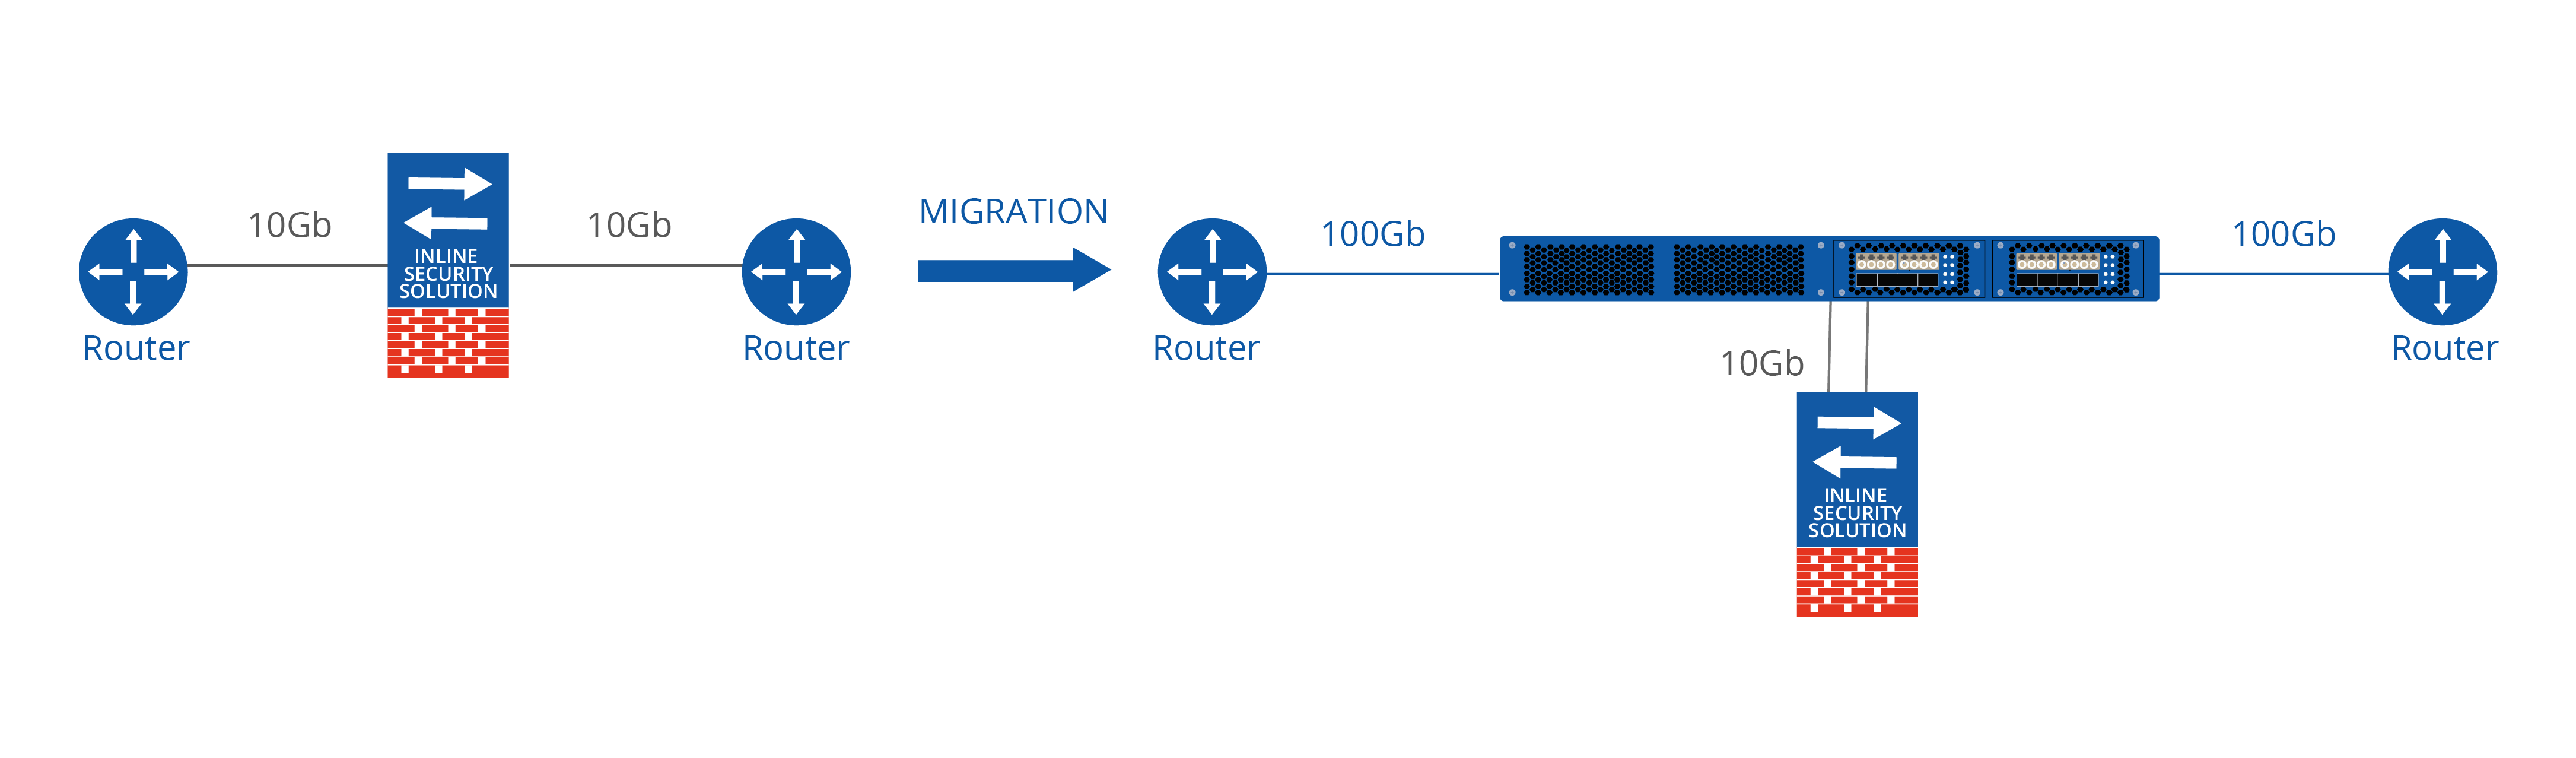 10Gb - 100Gb Migration diagram (1).png